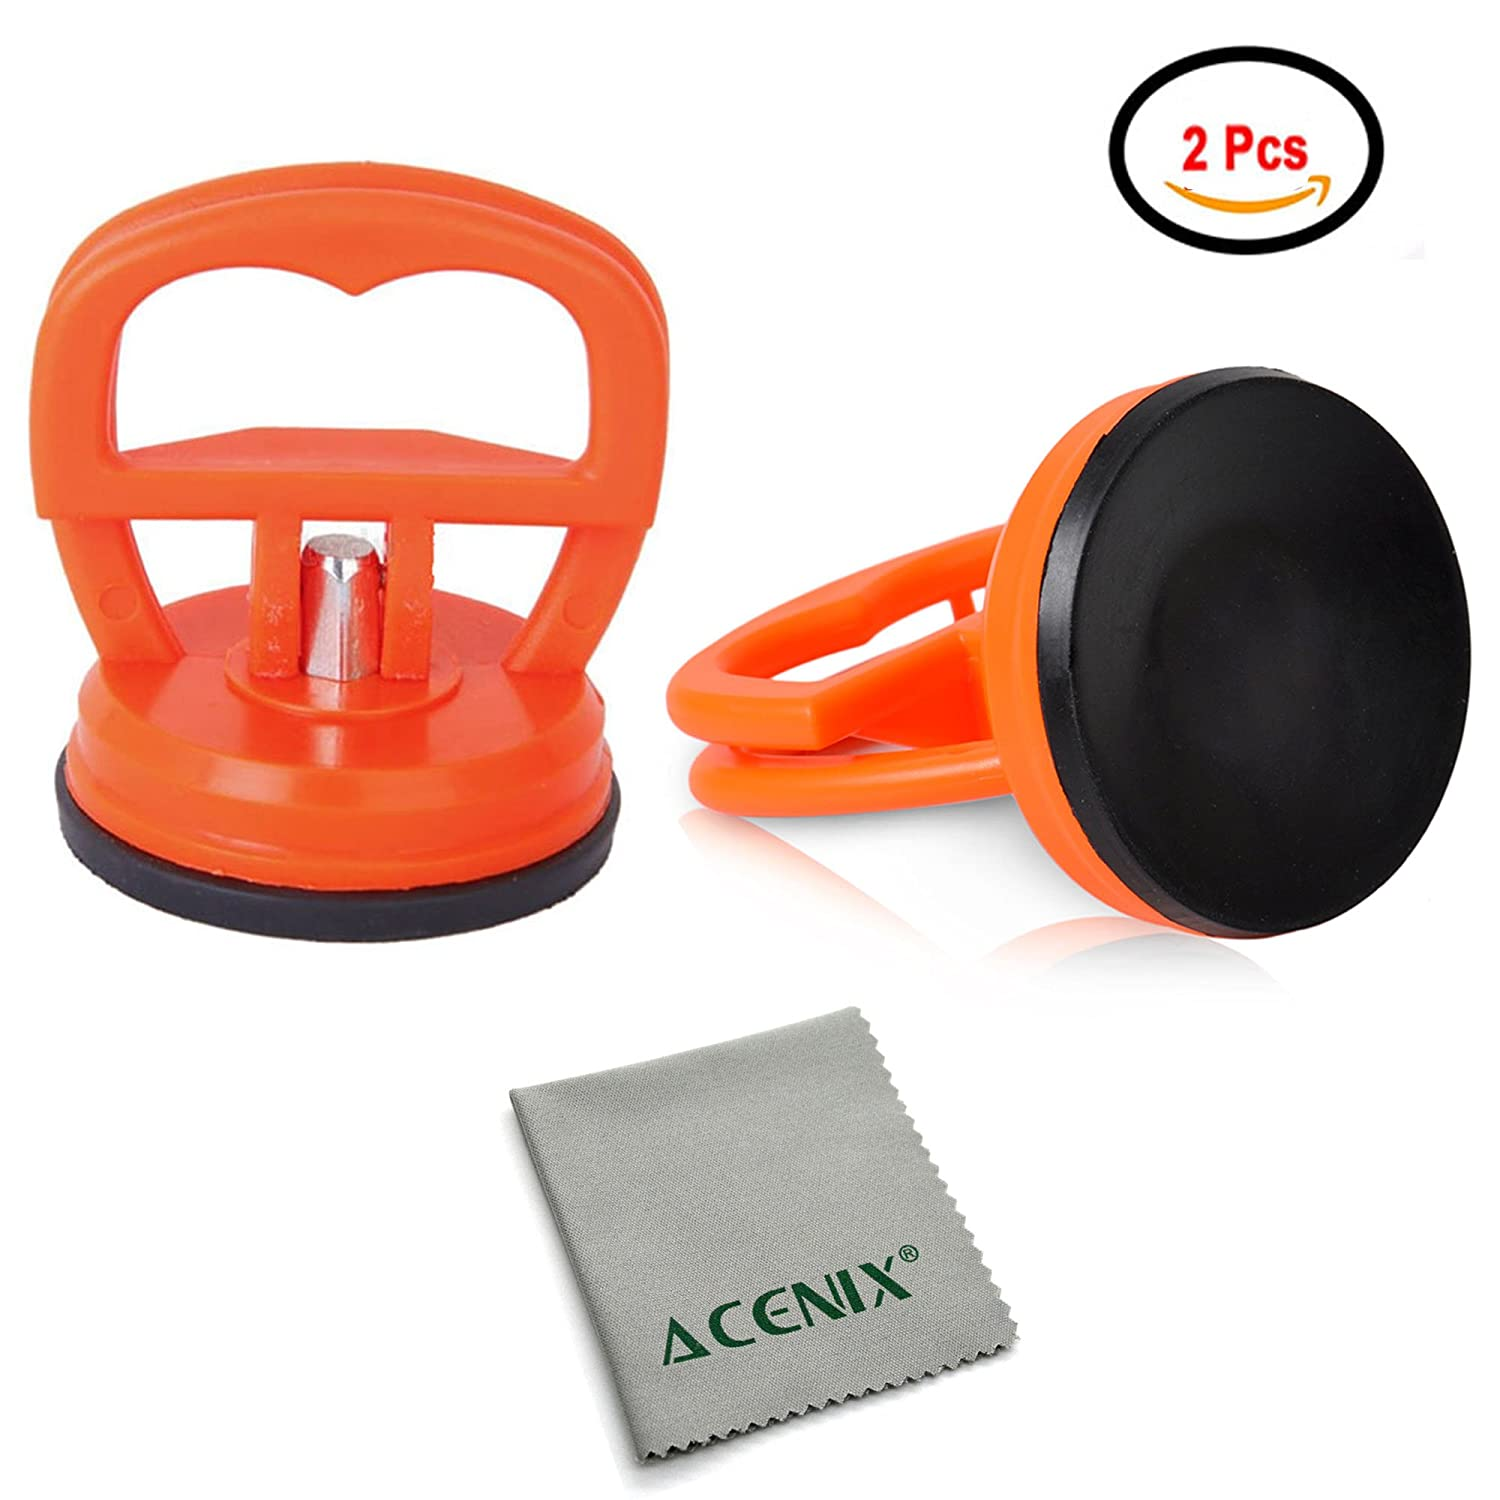 ACENIX [ Twin Pack ] 2 Pcs LCD Screen Opening Heavy Duty Dent Remover Sucker Puller Suction Cup For iMac iPhone iPad iPod Samsung, Samsung Tab [ iNcluded Cleaning Cloth ] TOOL MASTER DIRECT